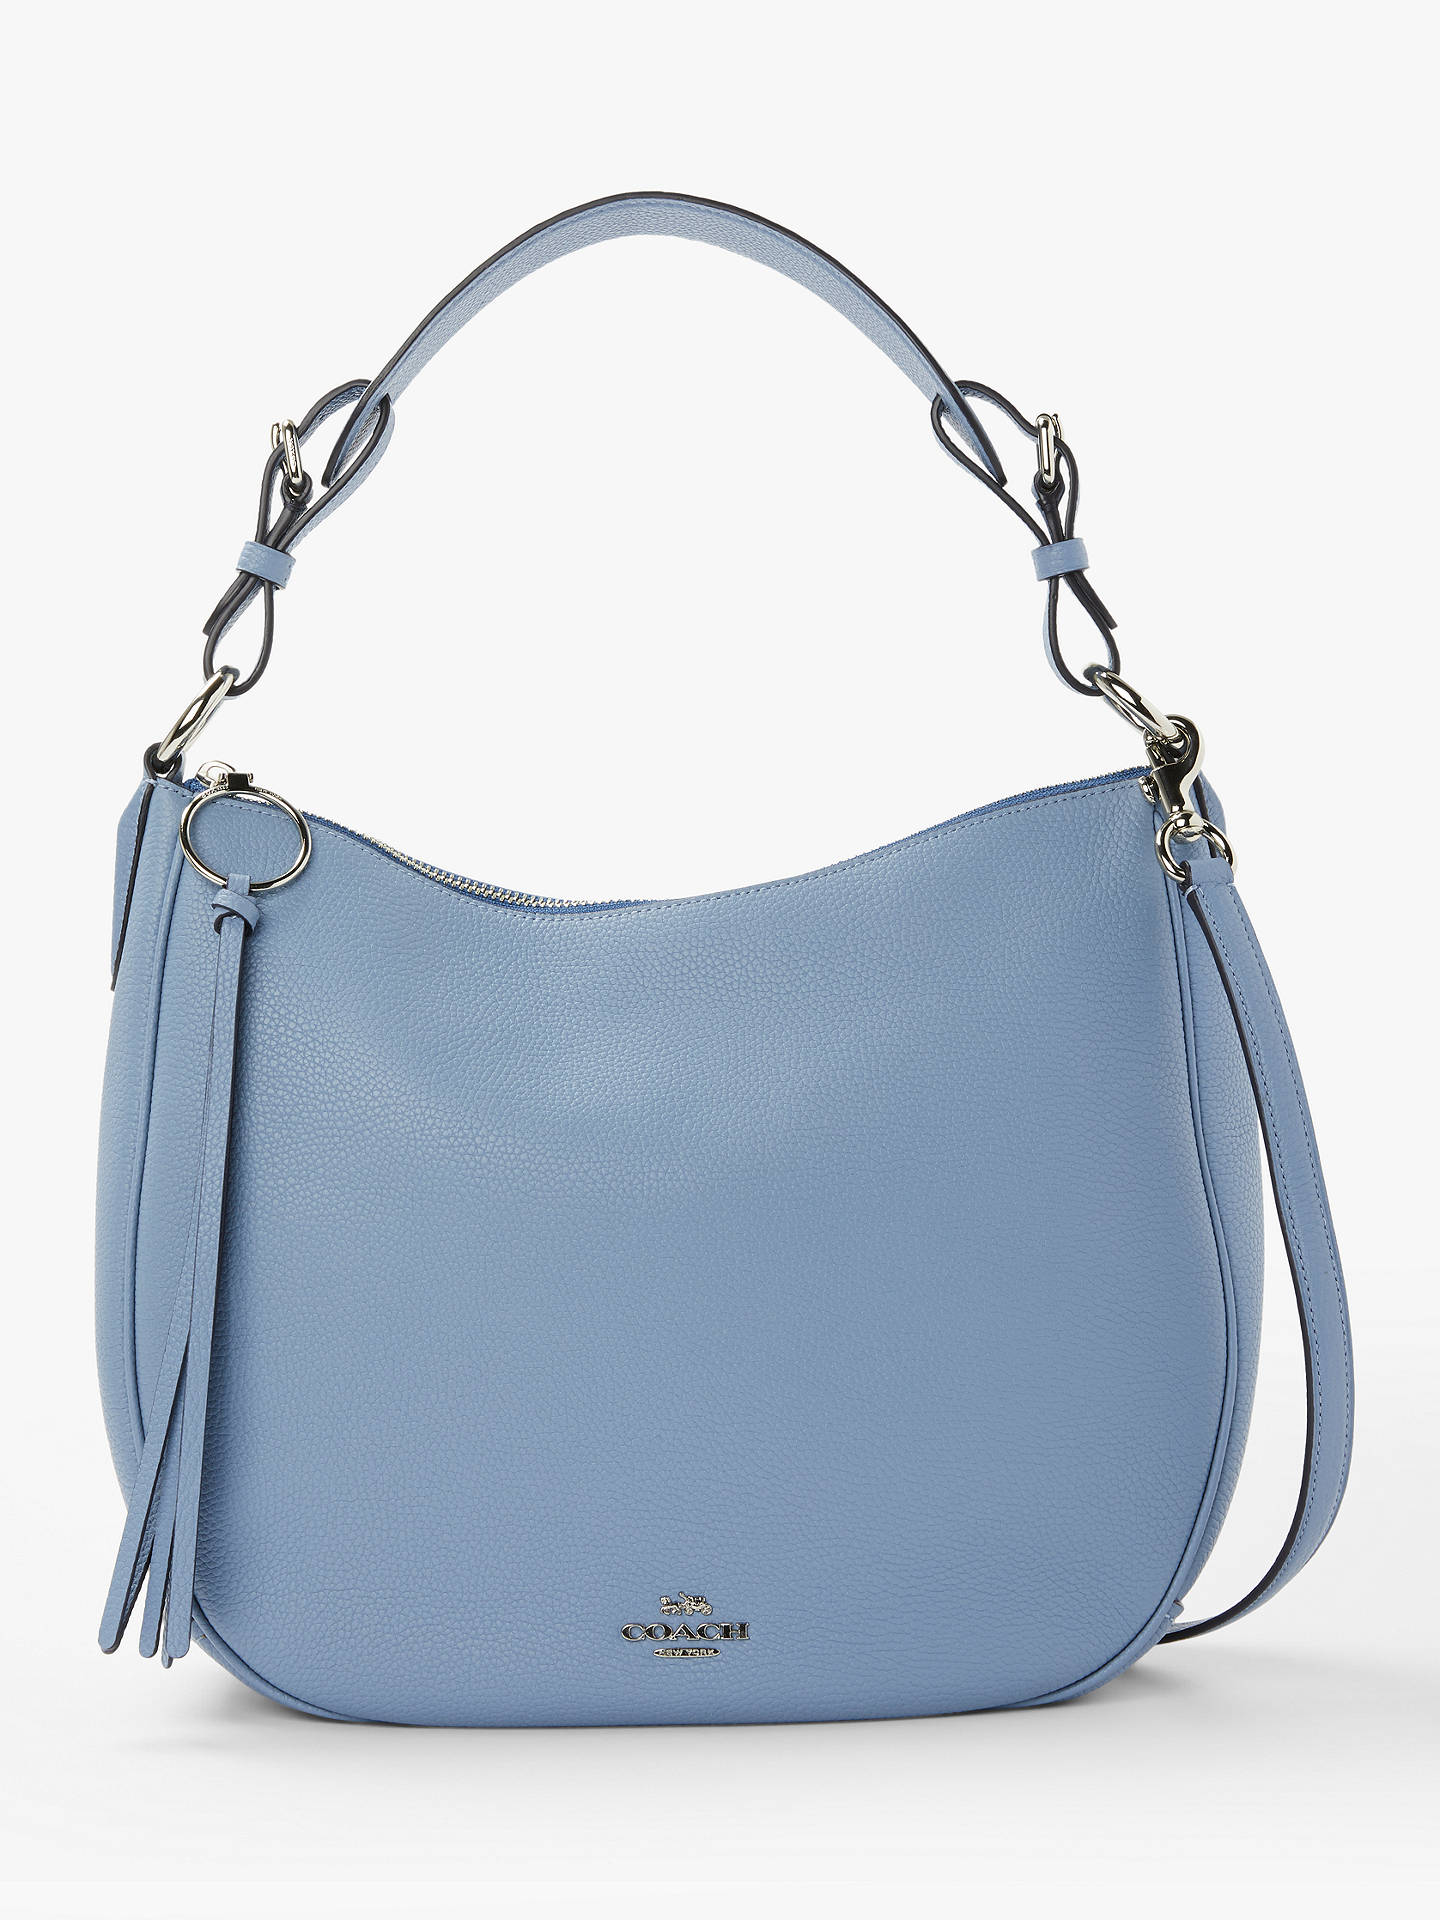 coach sutton pebbled leather hobo bag at john lewis partners rh johnlewis com